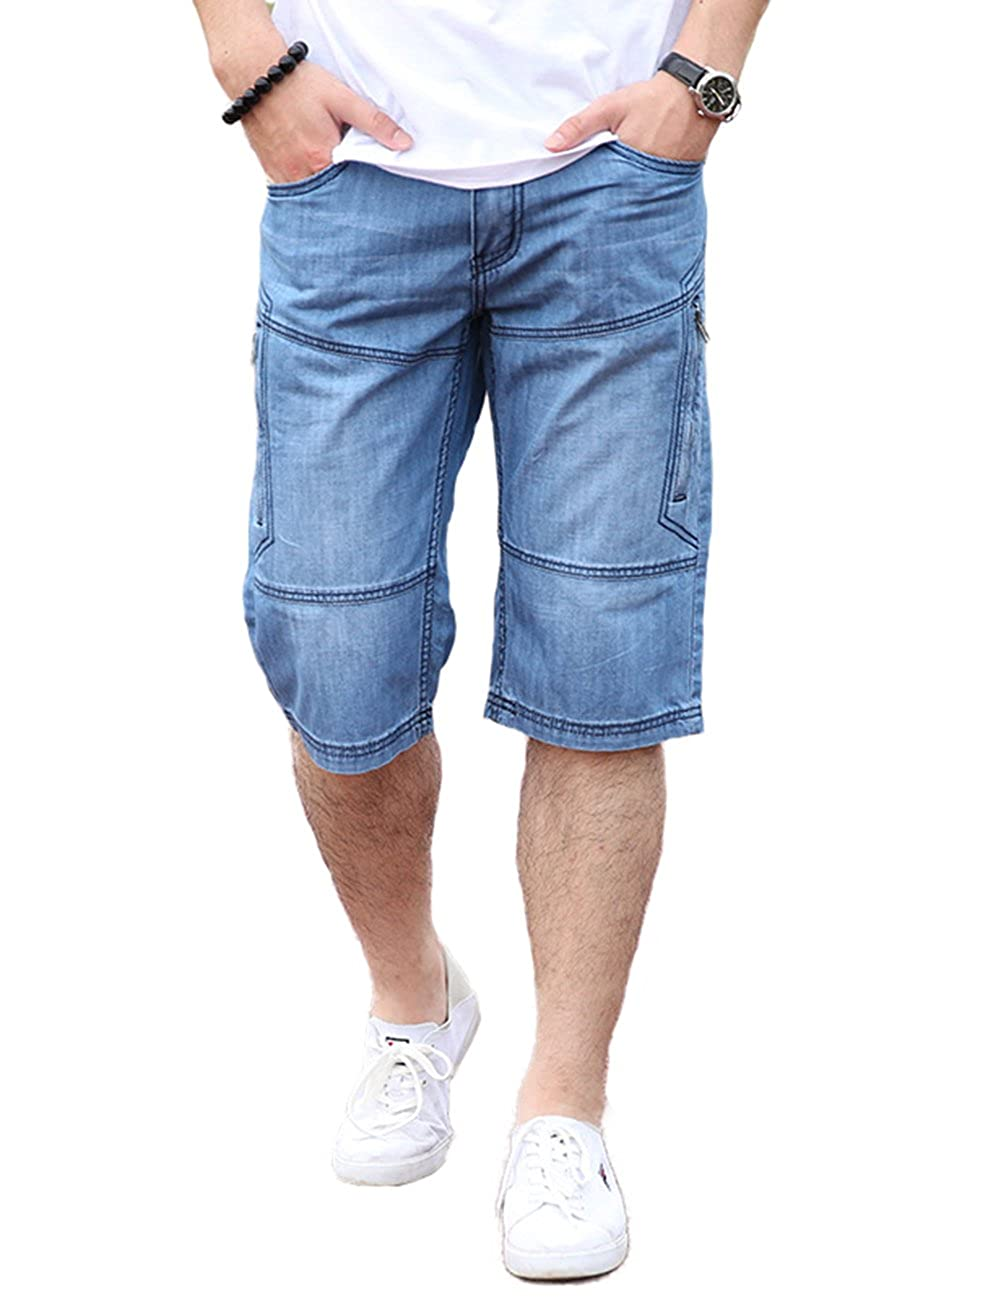 DSDZ Mens Casual Cargo Patchwork Blue Denim Jeans Shorts With Zippers